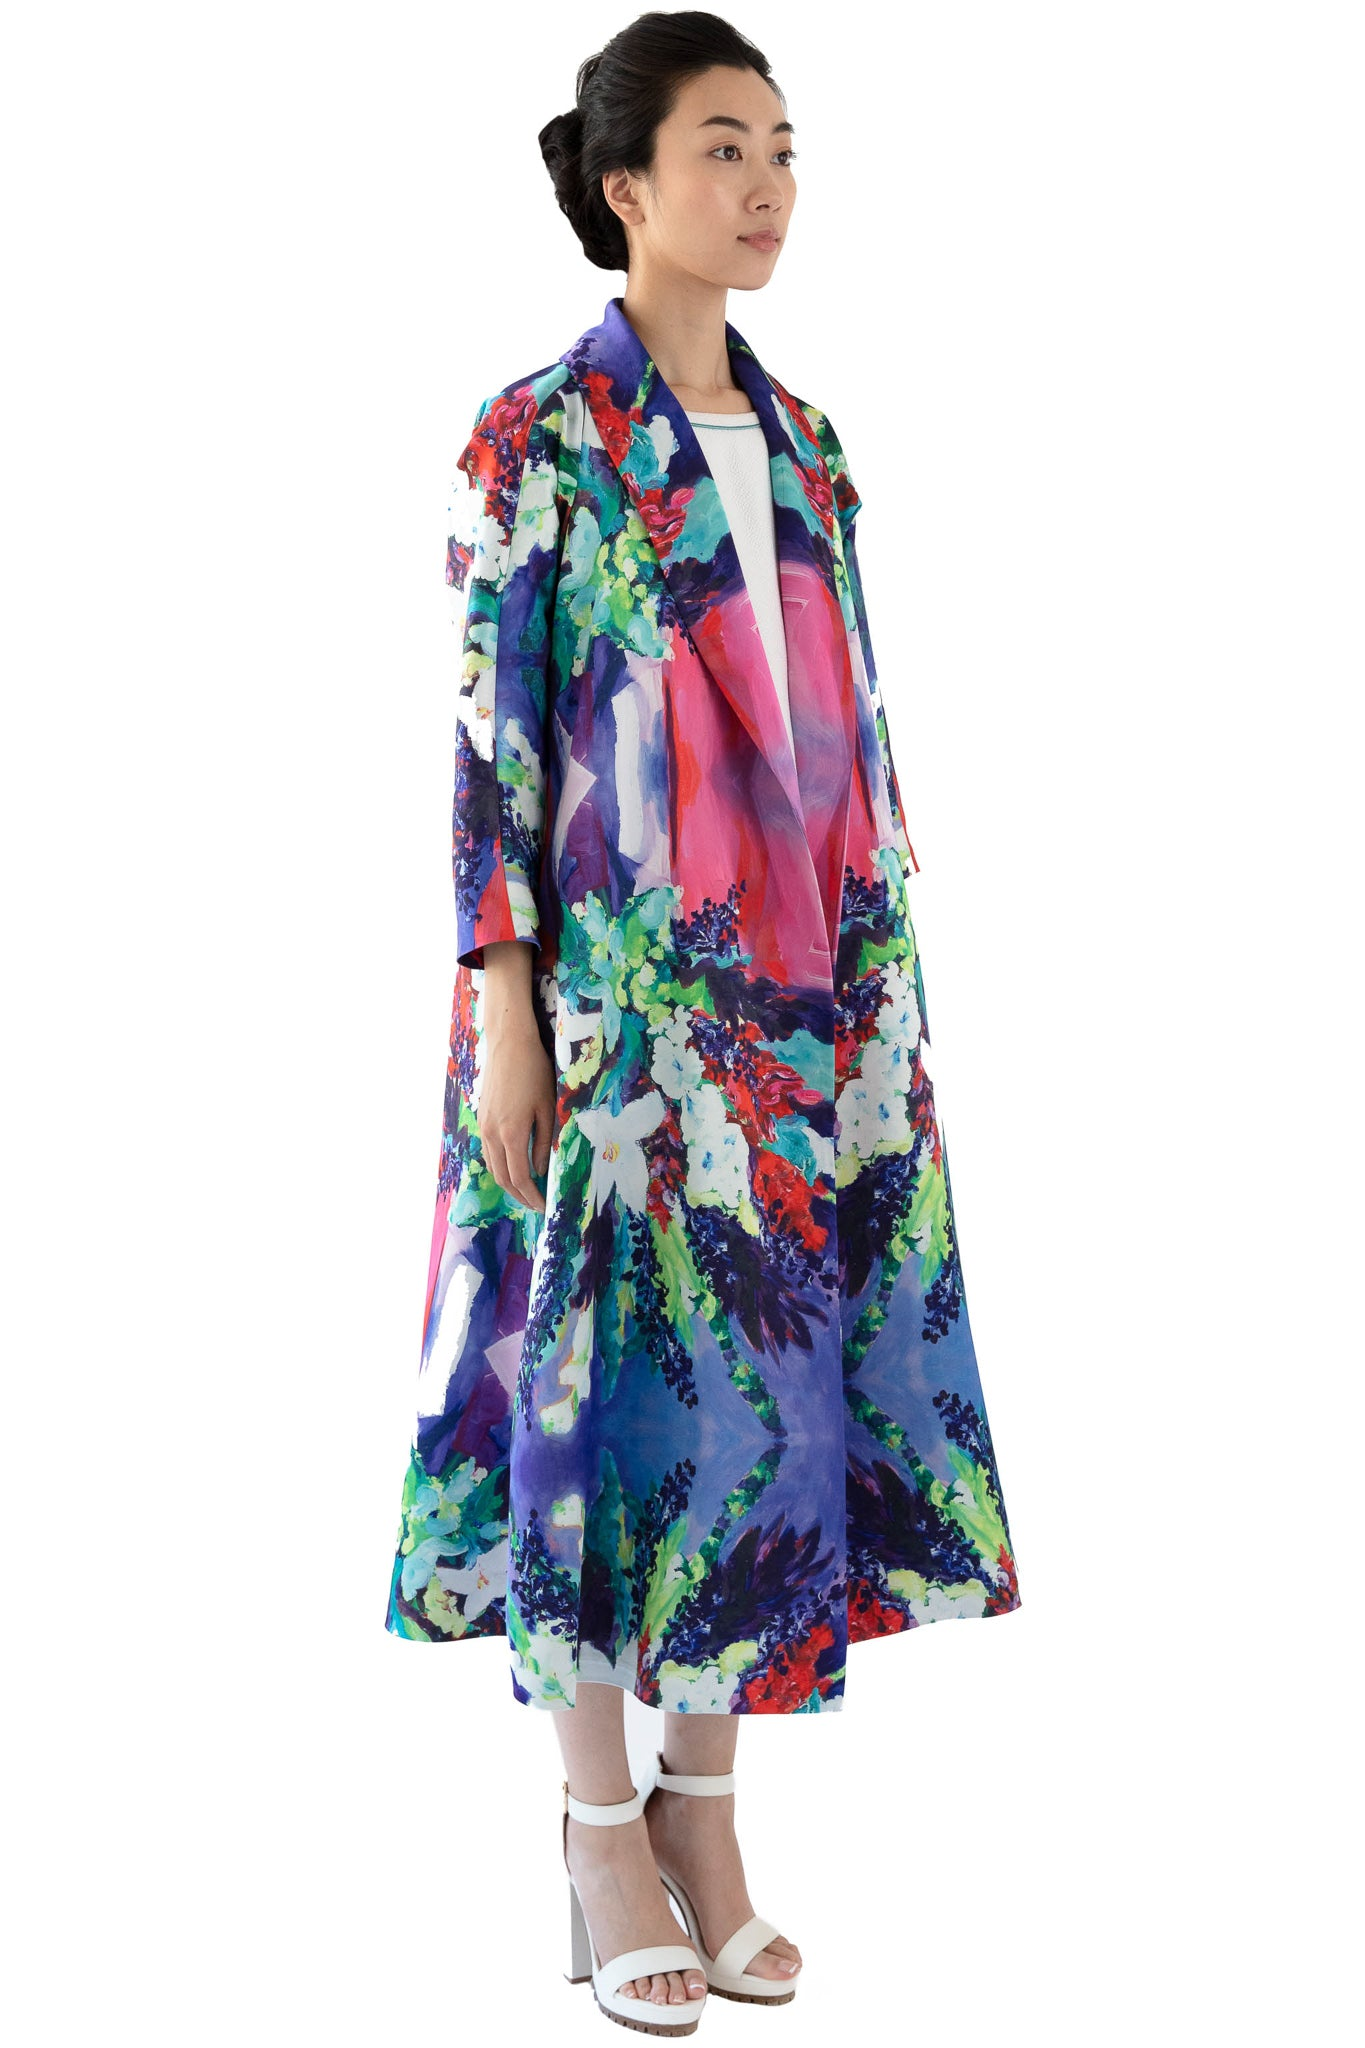 Women's floral print wrap dress